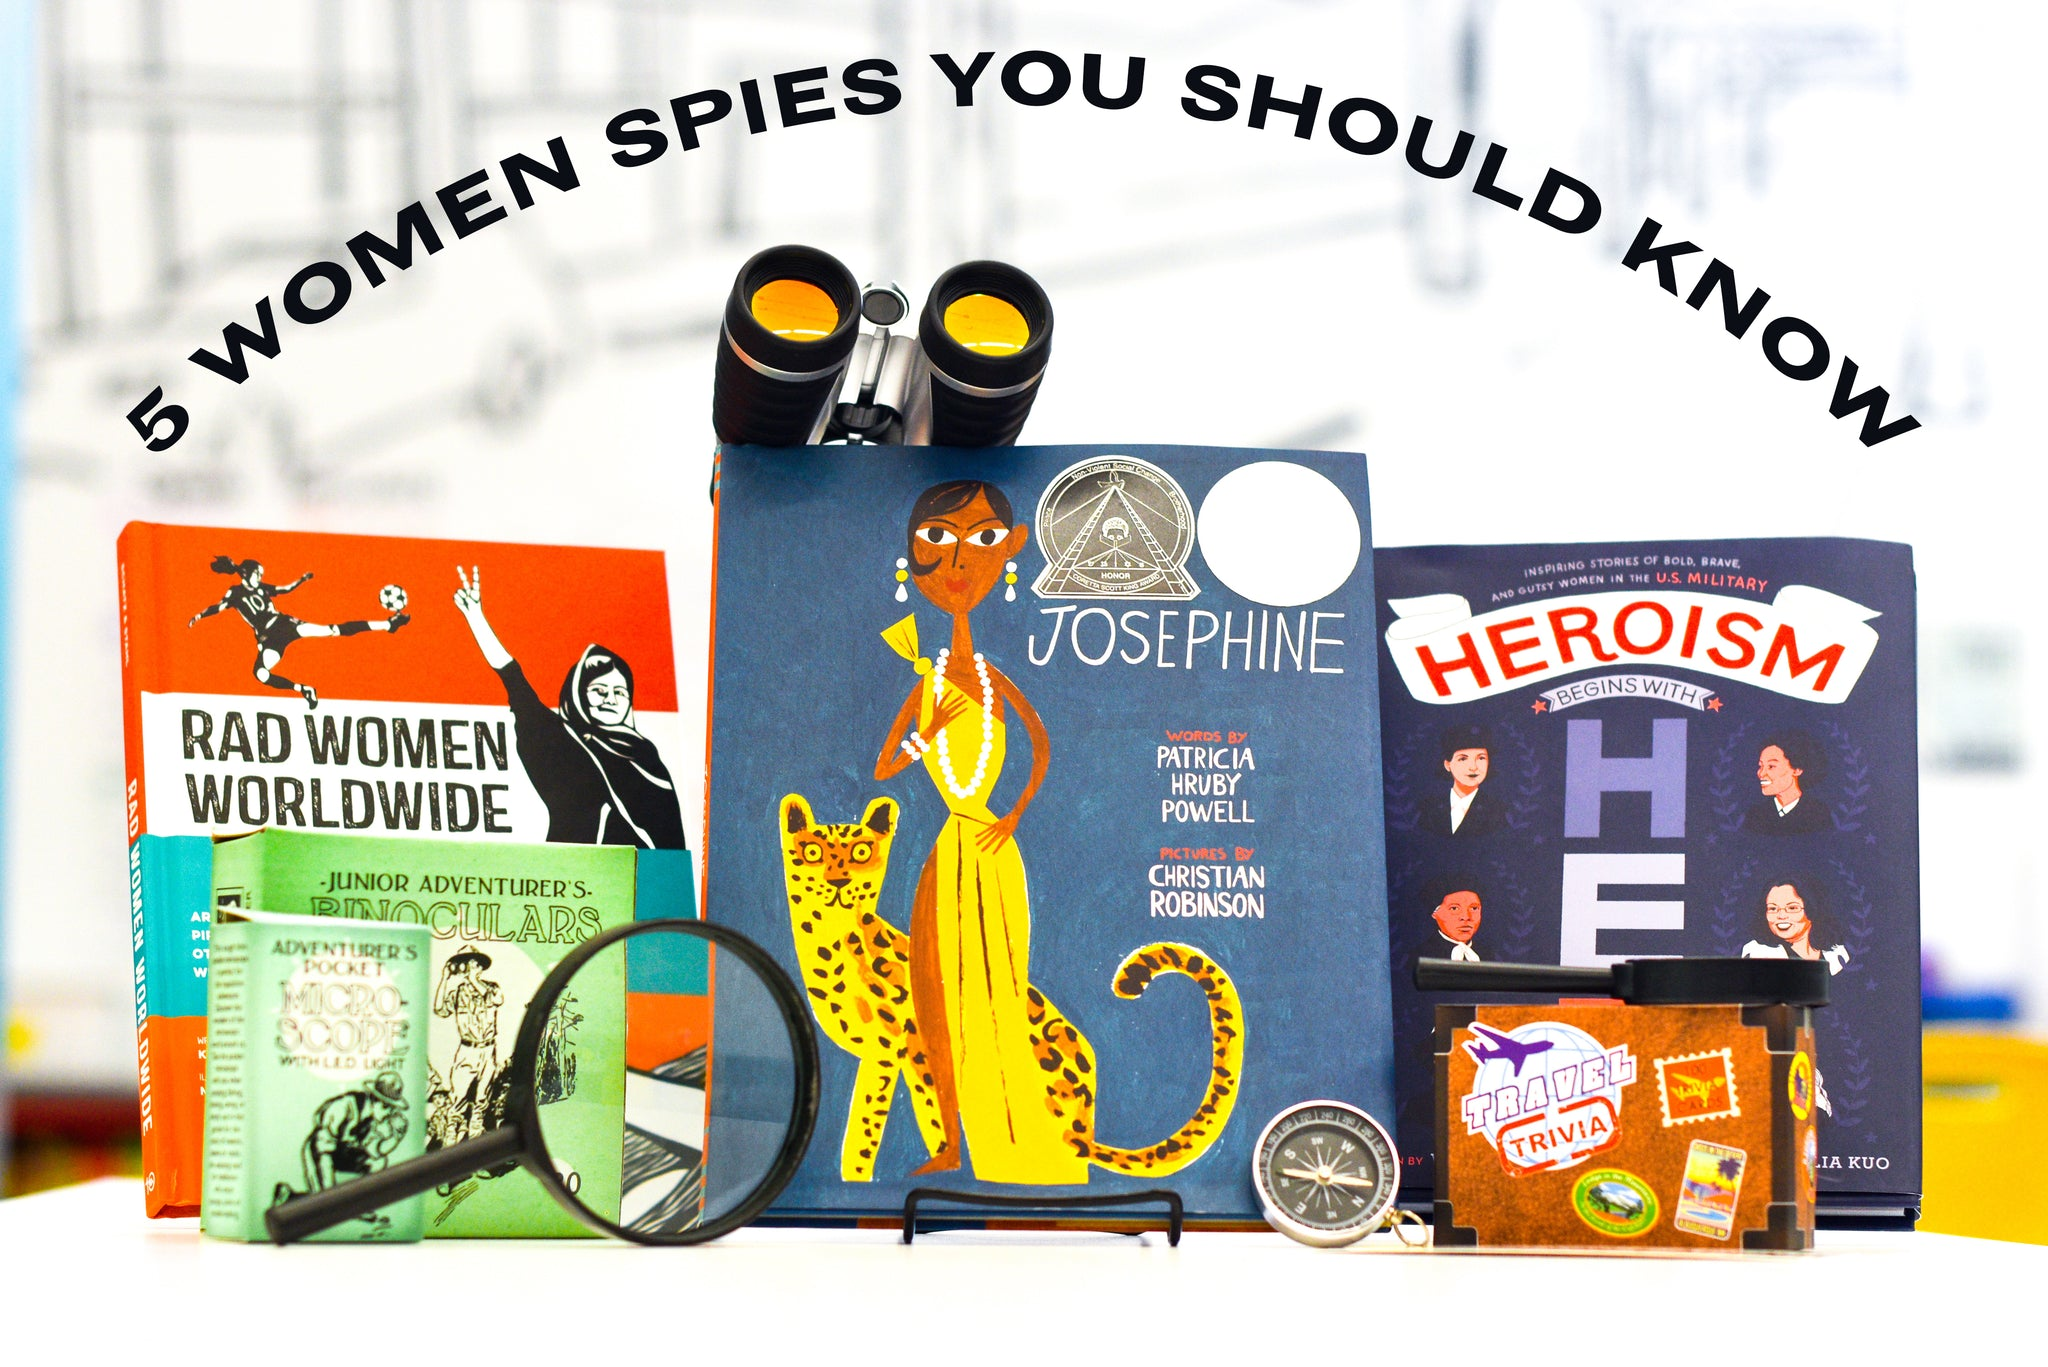 5 Women Spies You Should Know